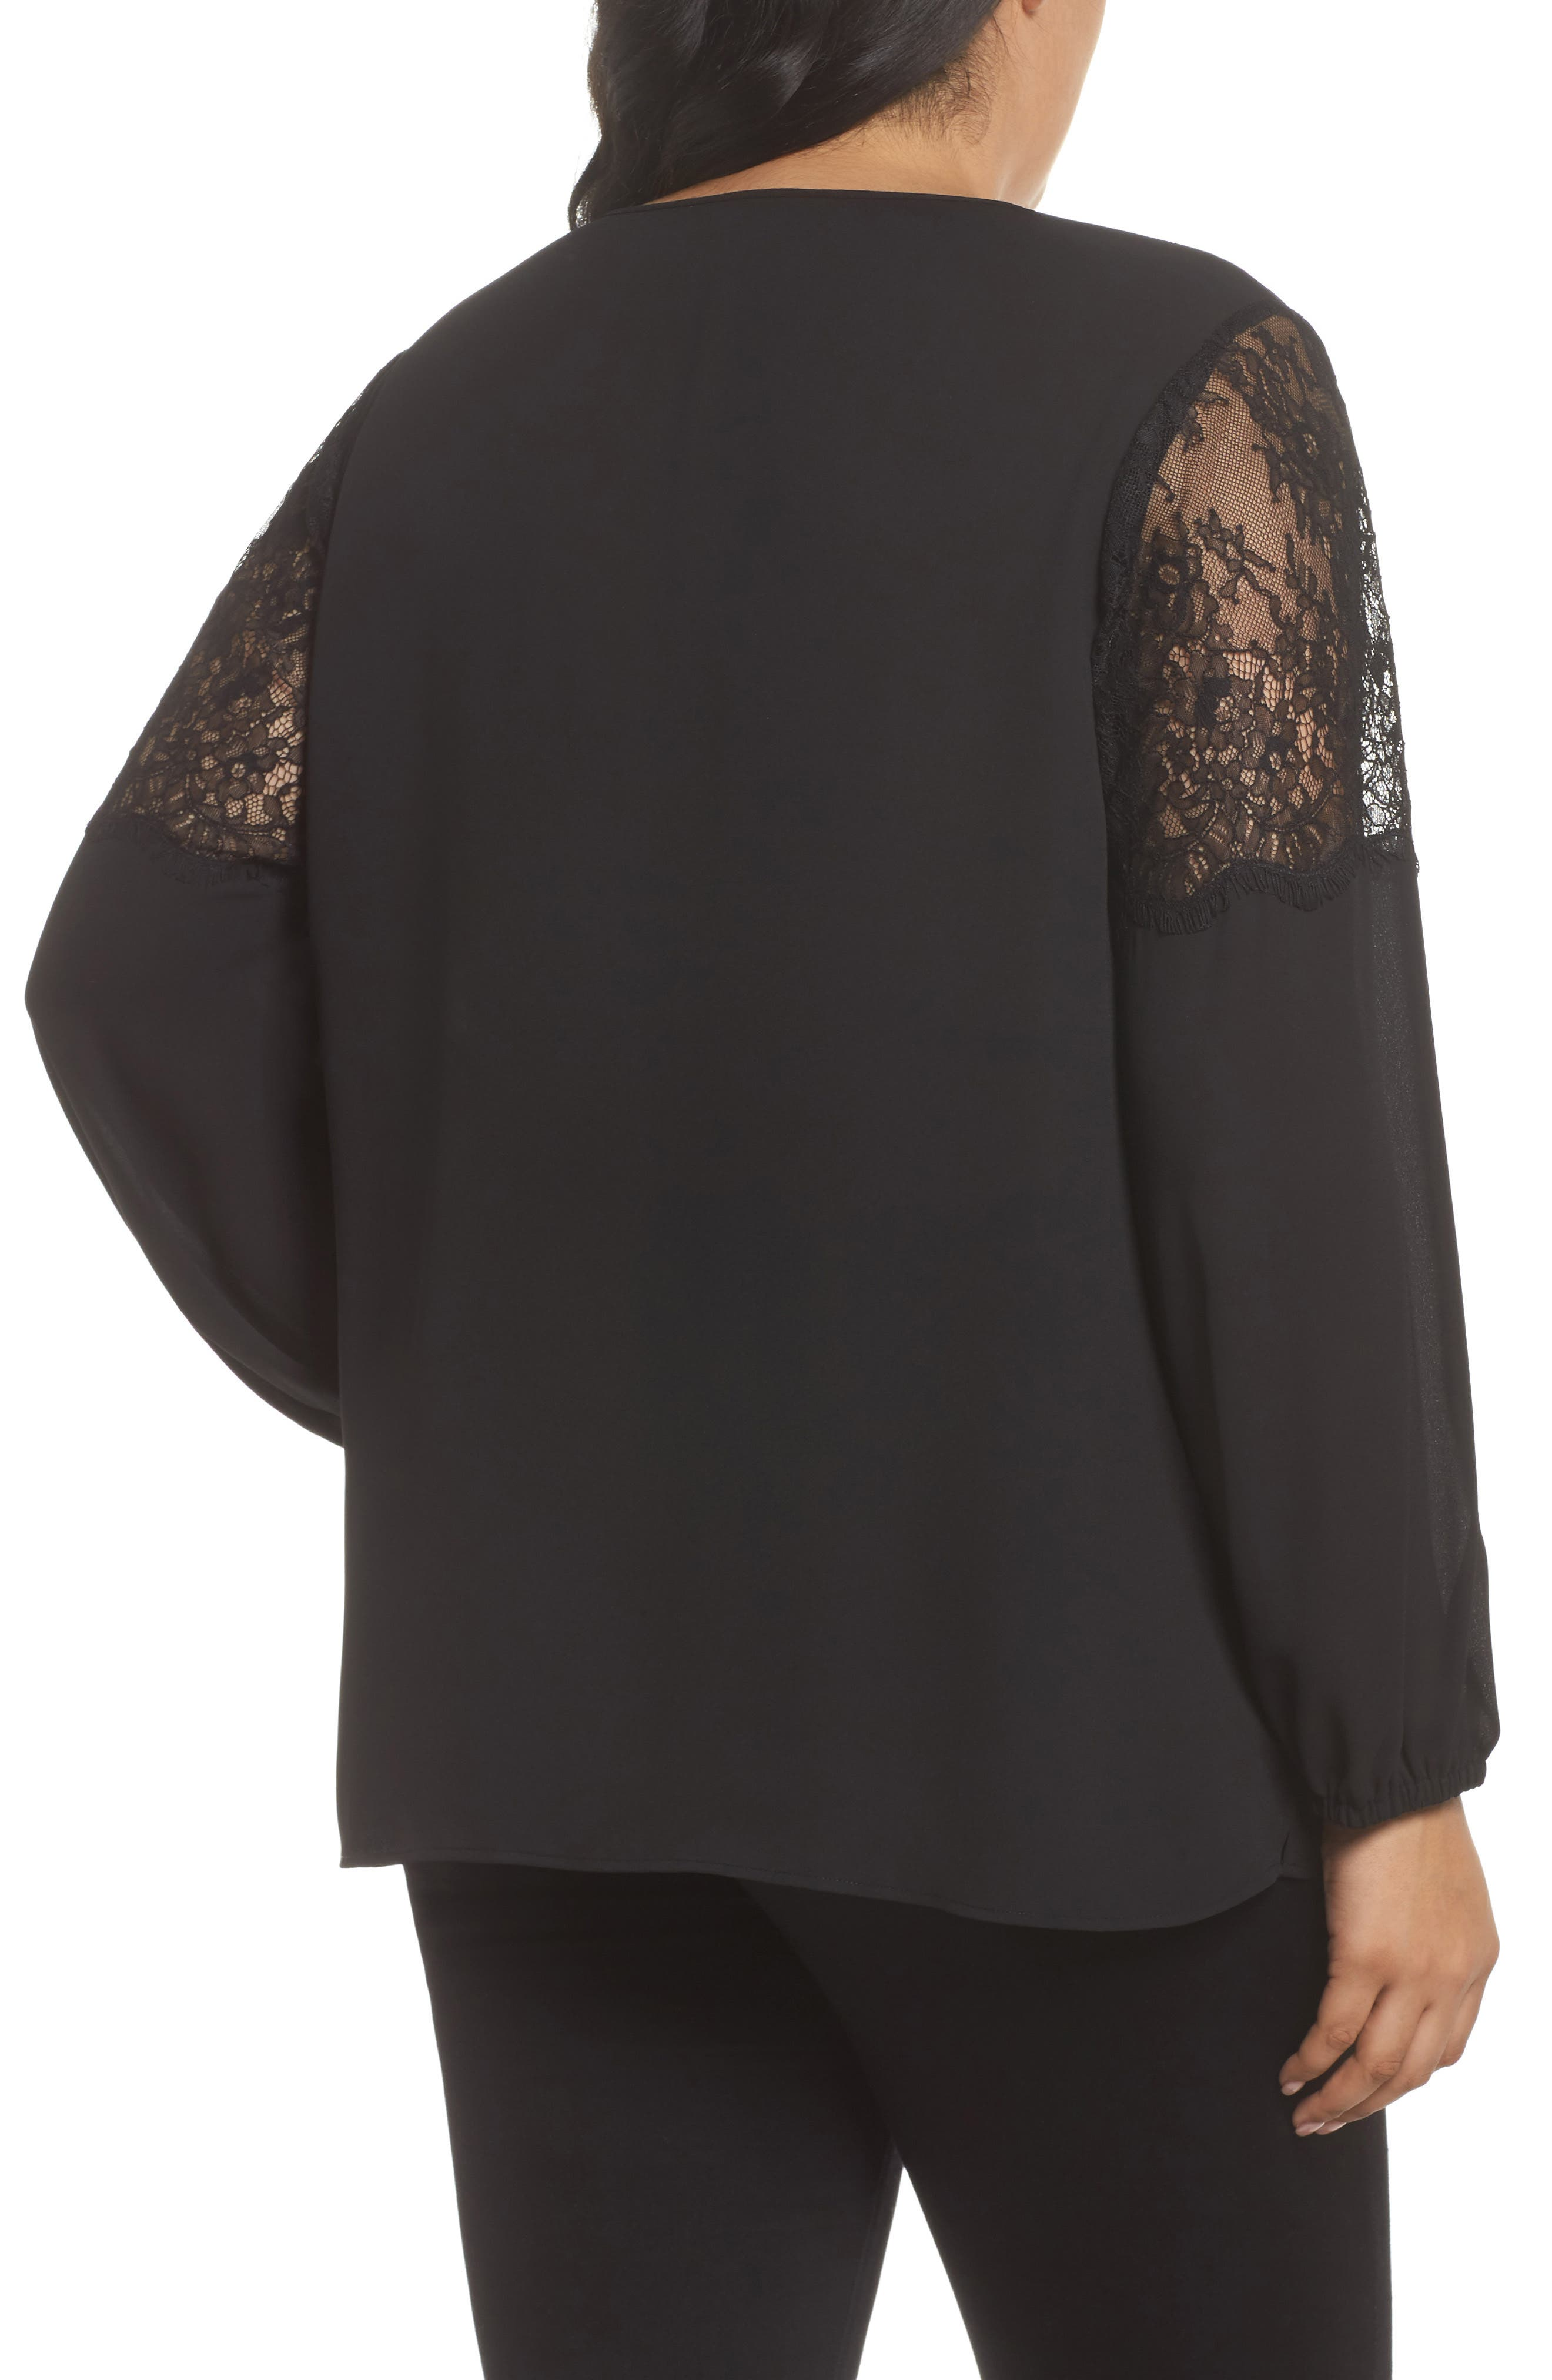 Lace Inset Sleeve Top,                             Alternate thumbnail 2, color,                             001